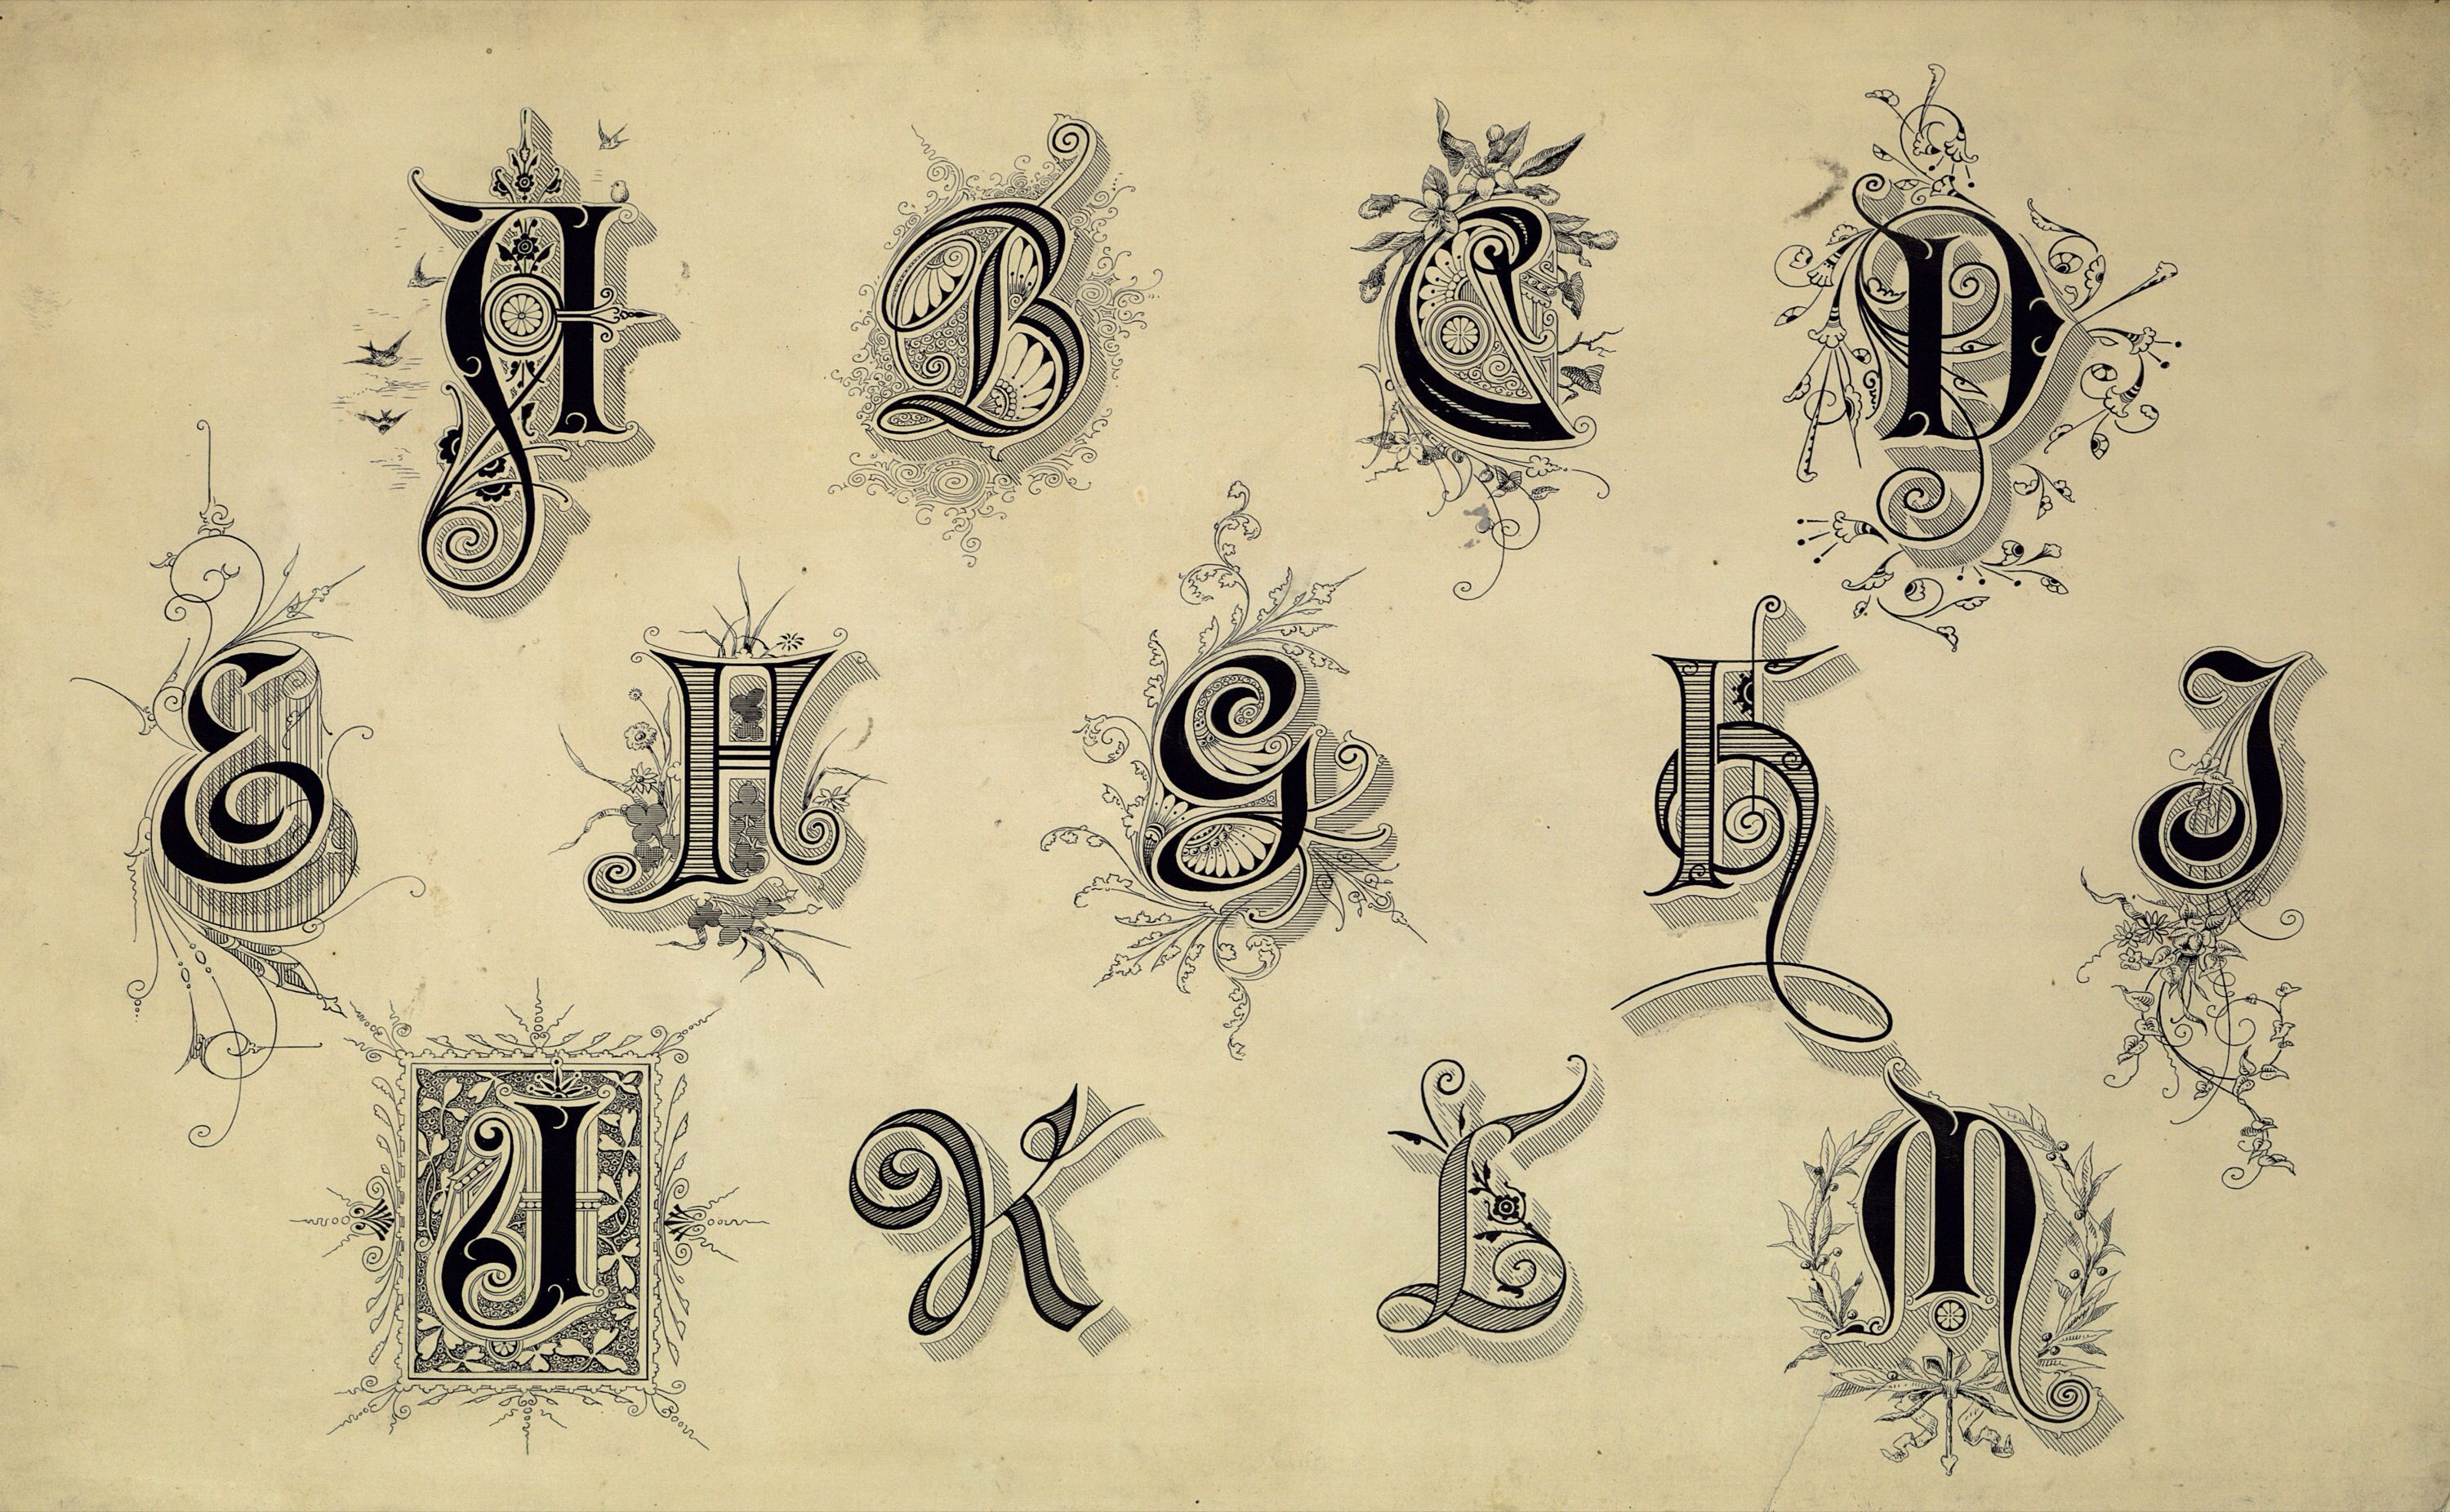 Vintage Typography Fonts And Flourishes Free Public Domain Images